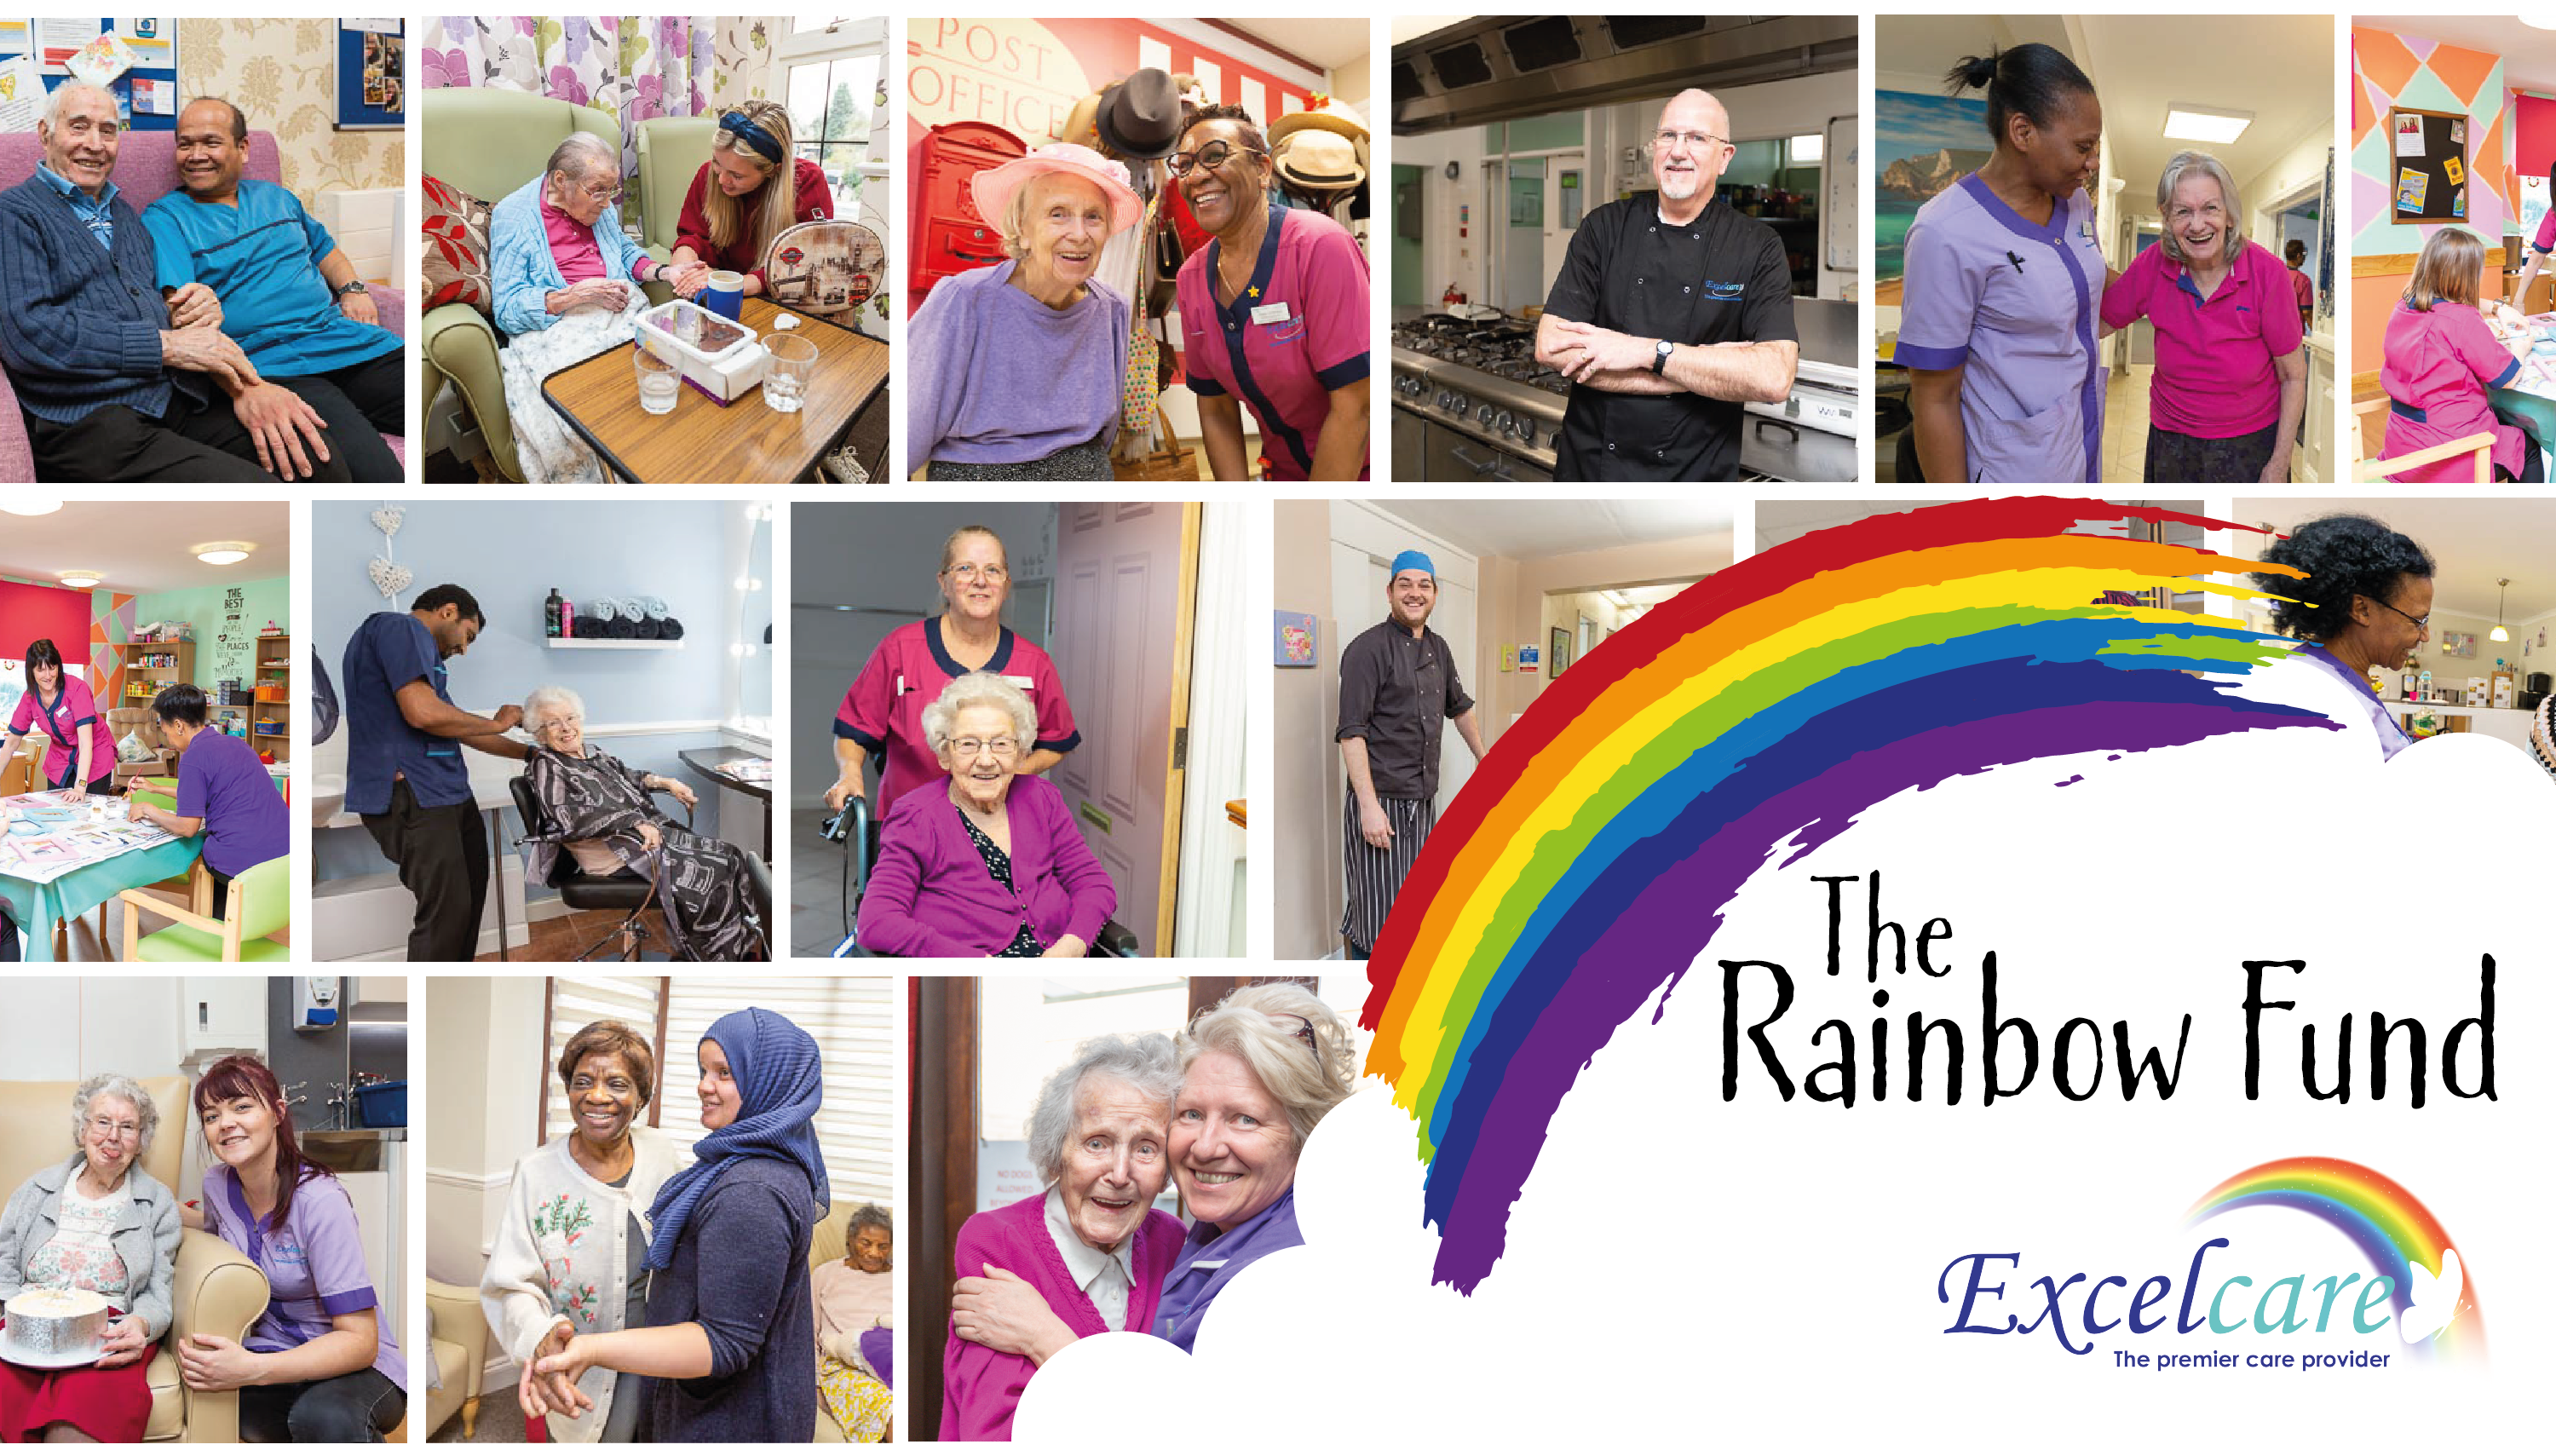 The Excelcare Rainbow Fund